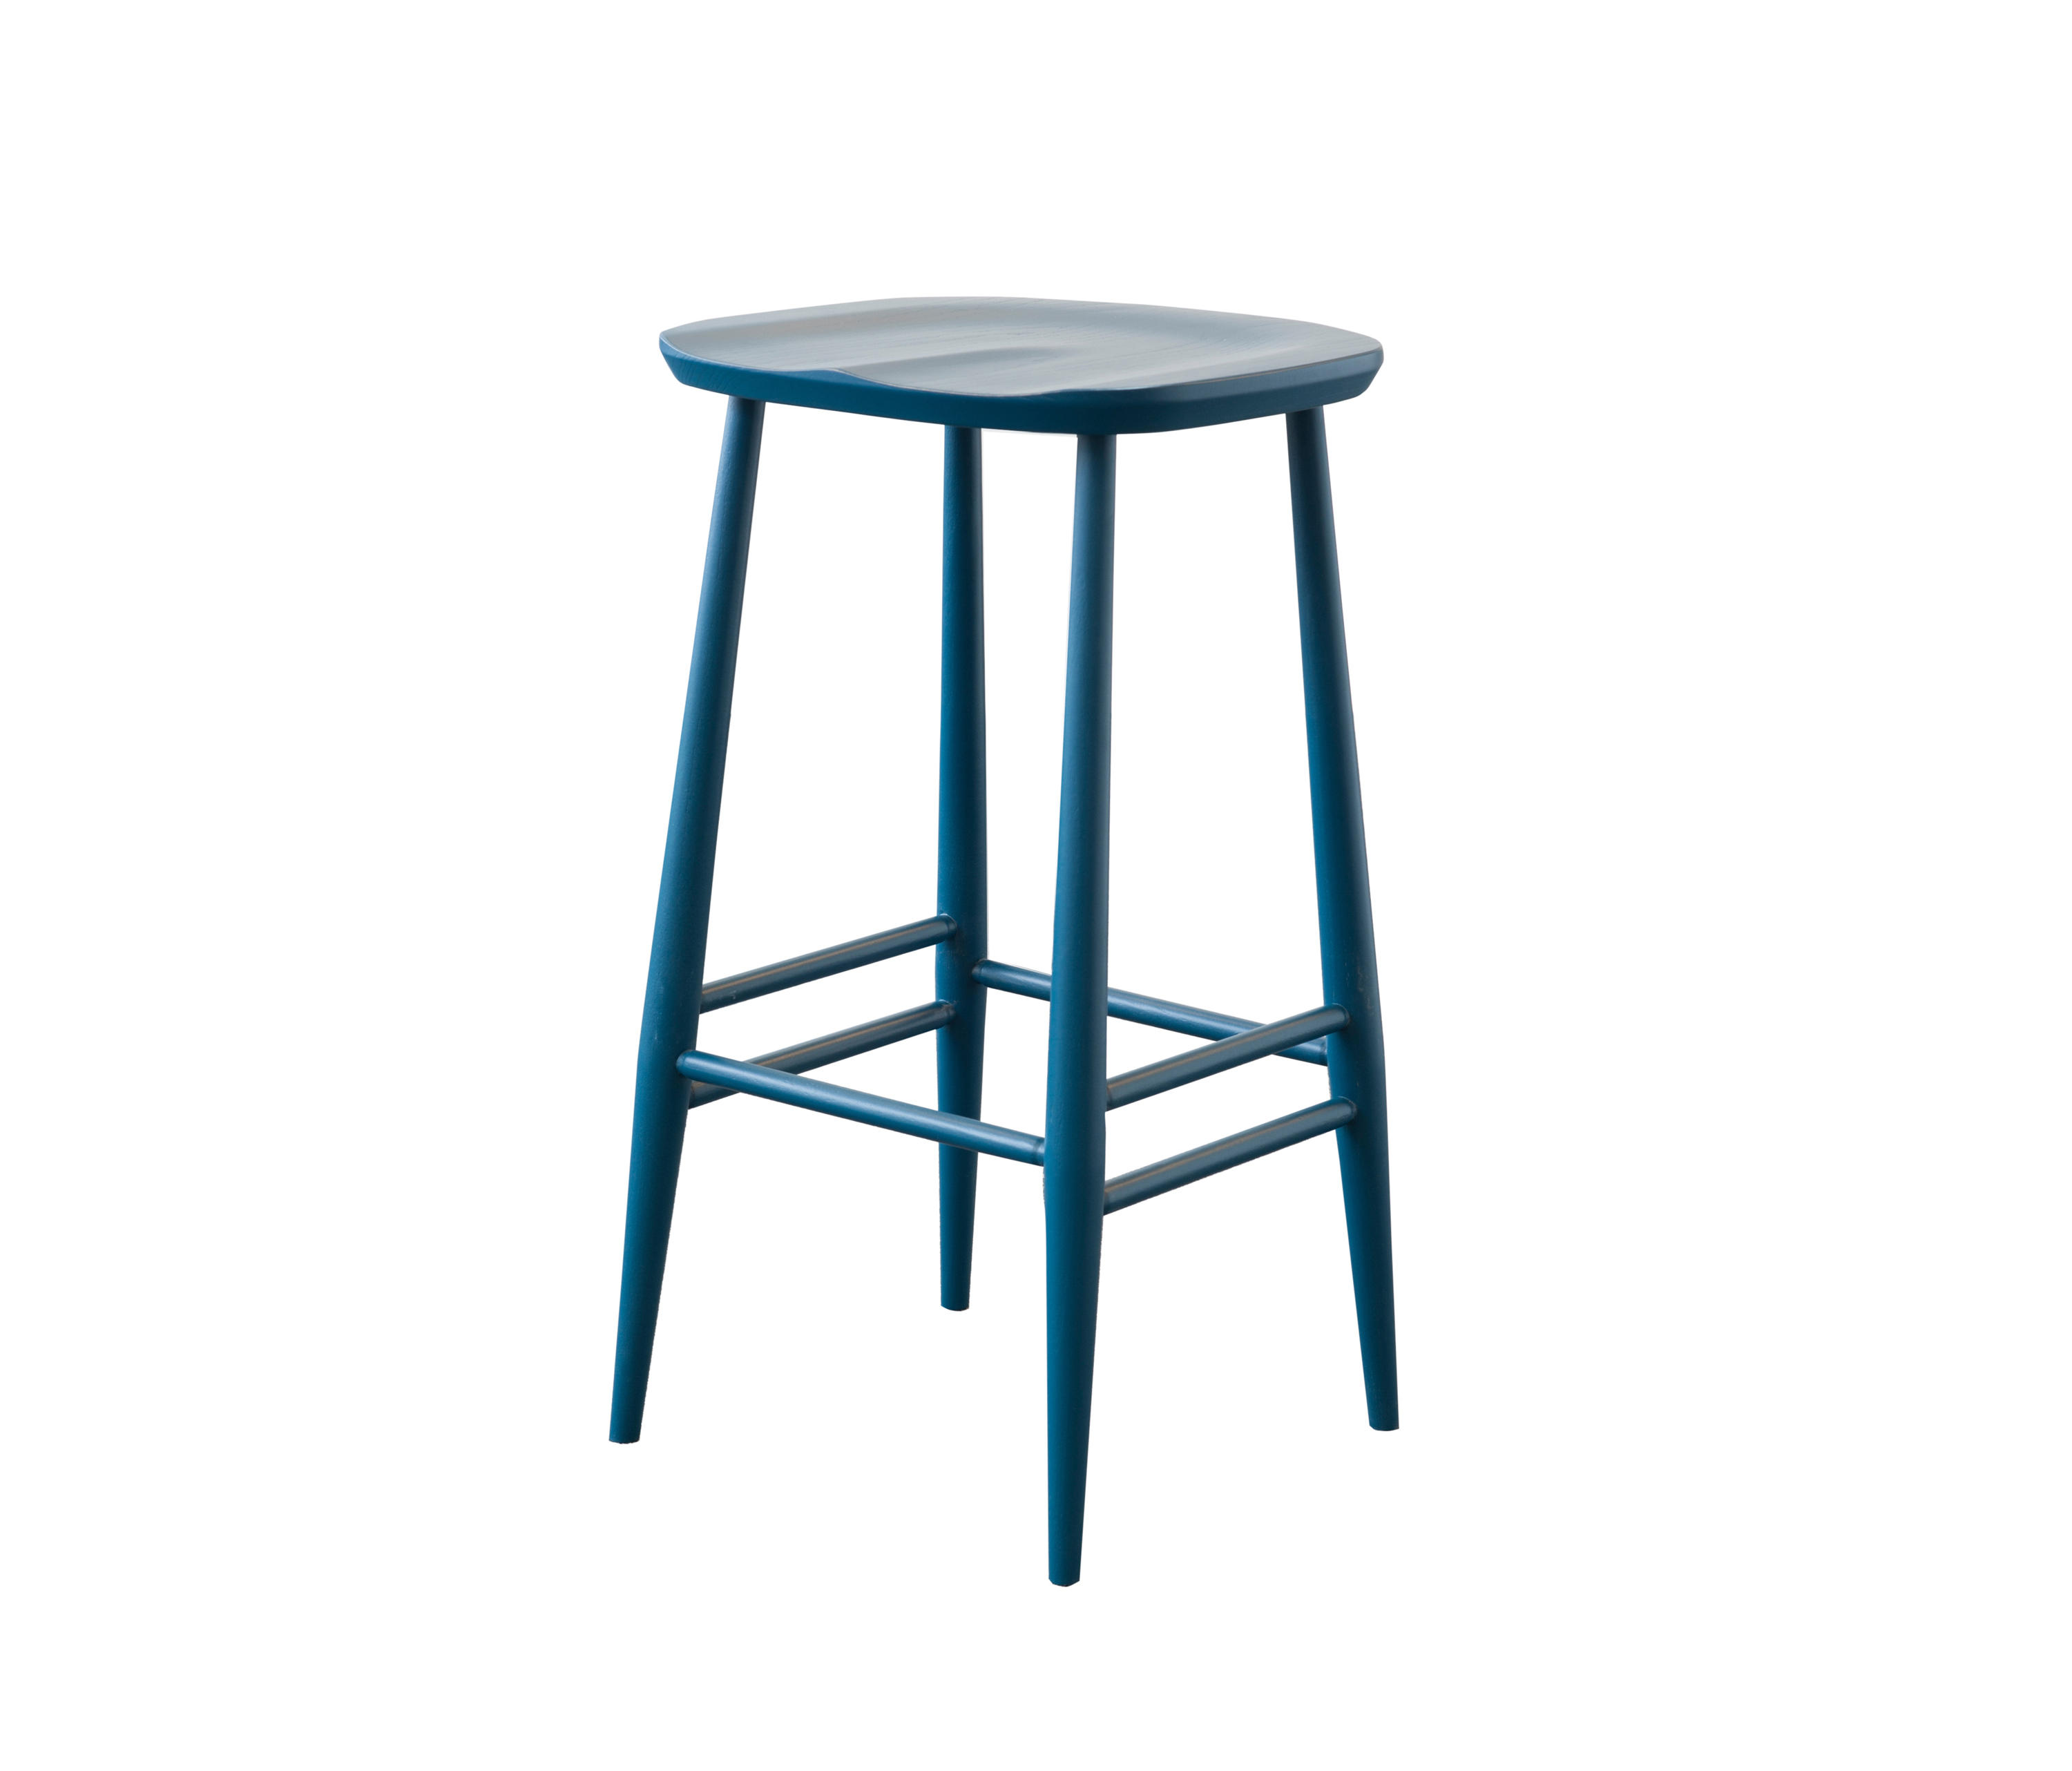 ORIGINALS BAR STOOL | STANDARD - Barhocker von ercol | Architonic